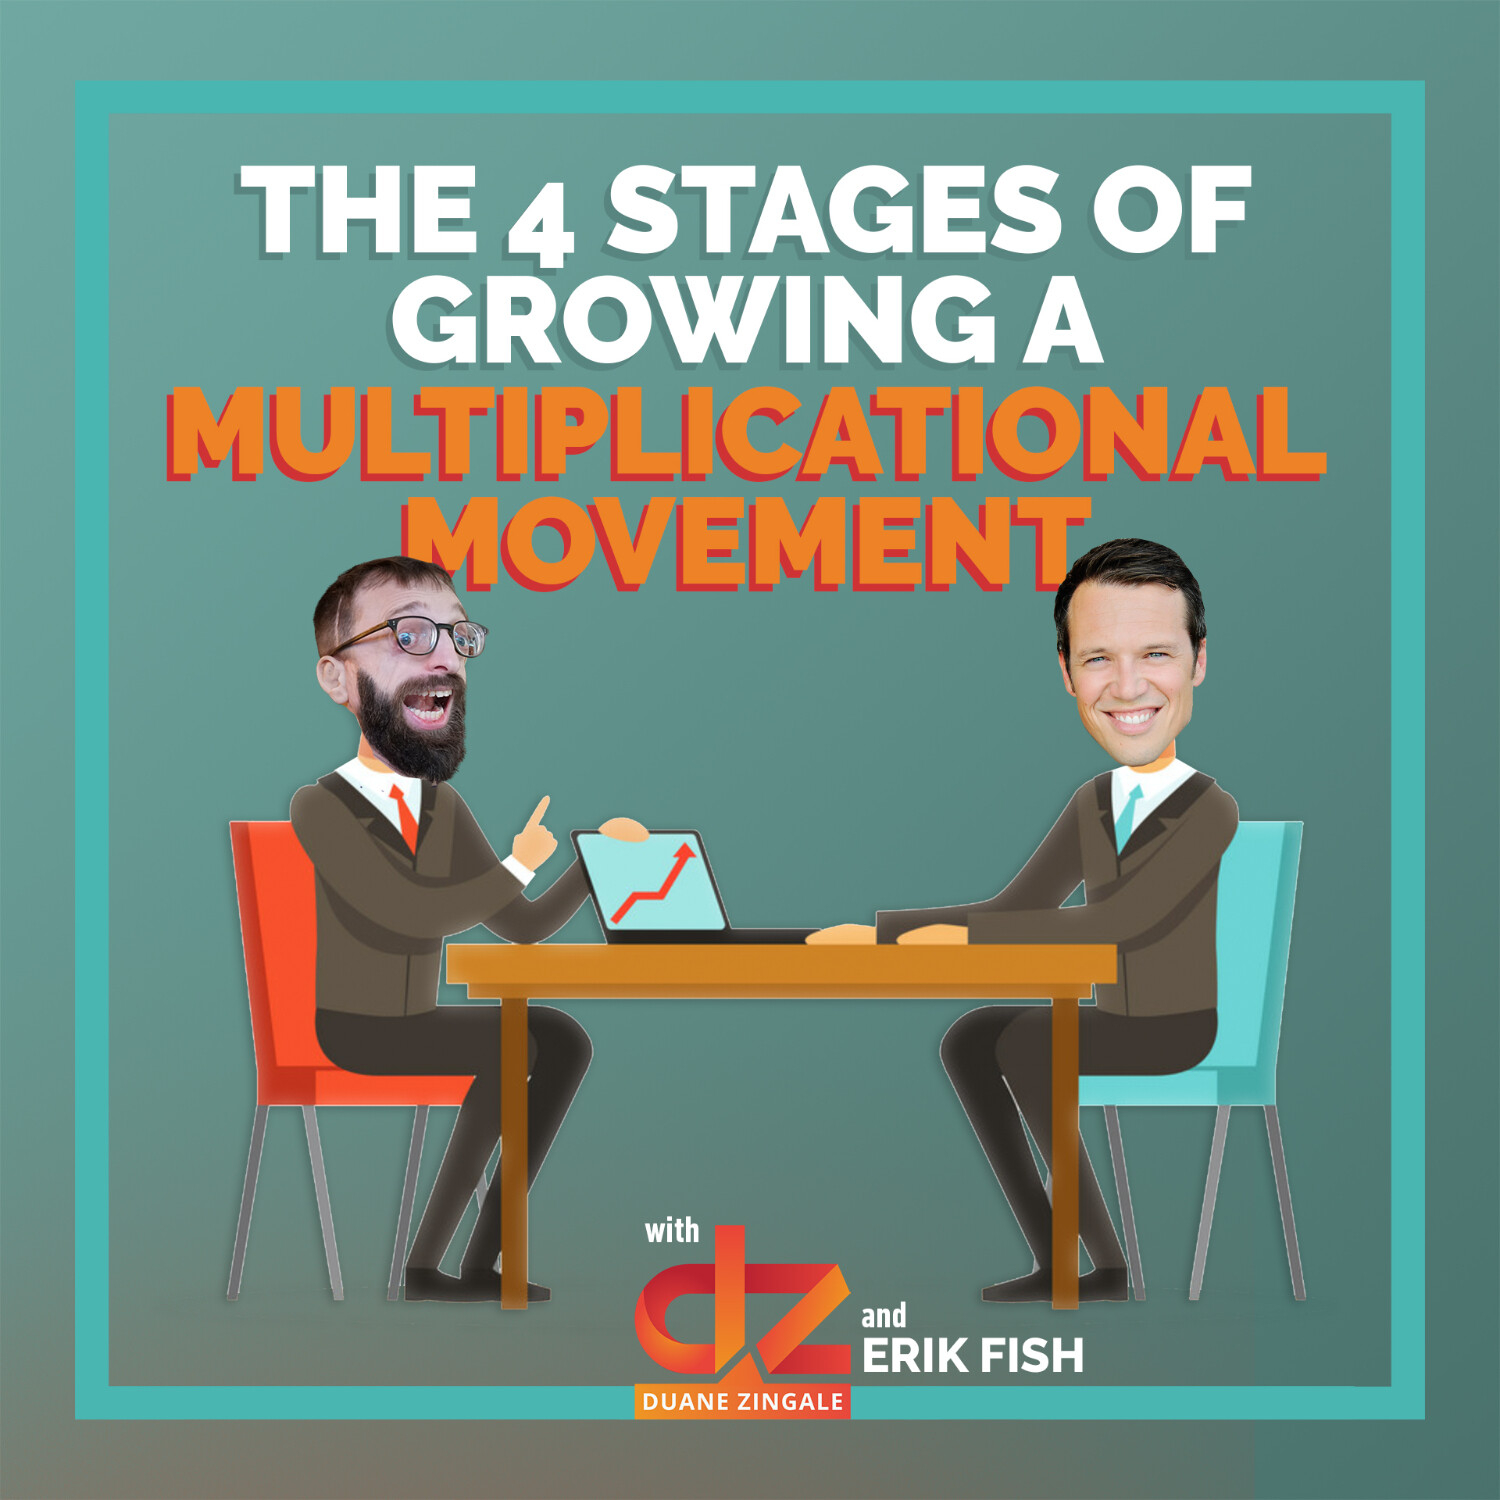 MYMS 40: The 4 stages of growing a multiplicational movement with Erik Fish